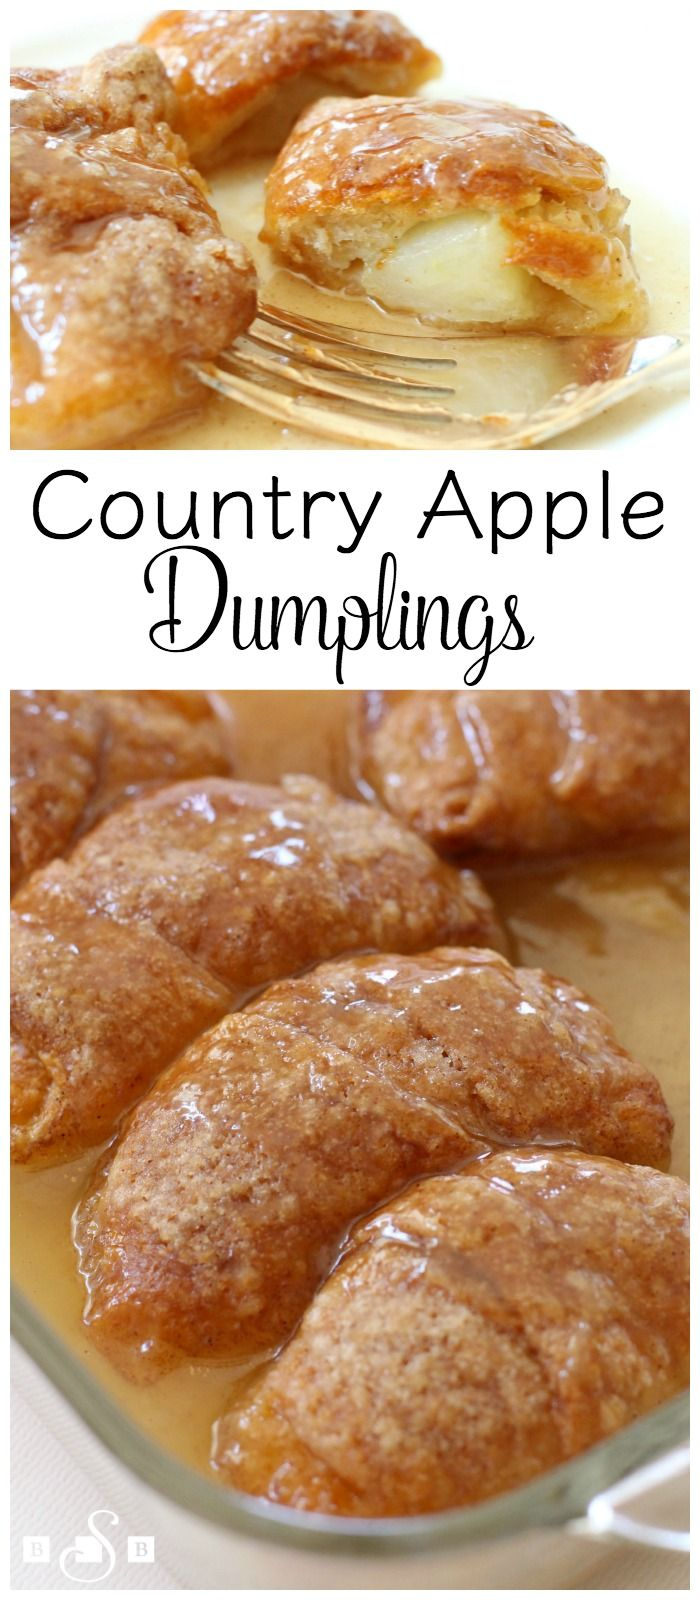 Country Apple Dumplings - the EASIEST apple dumplings EVER! Made with crescent rolls, then drenched in a lovely butter-cinnamon mixture, topped with some 7-Up, then baked. Absolutely delicious! You've GOT to try these! From Butter With A Side of Bread